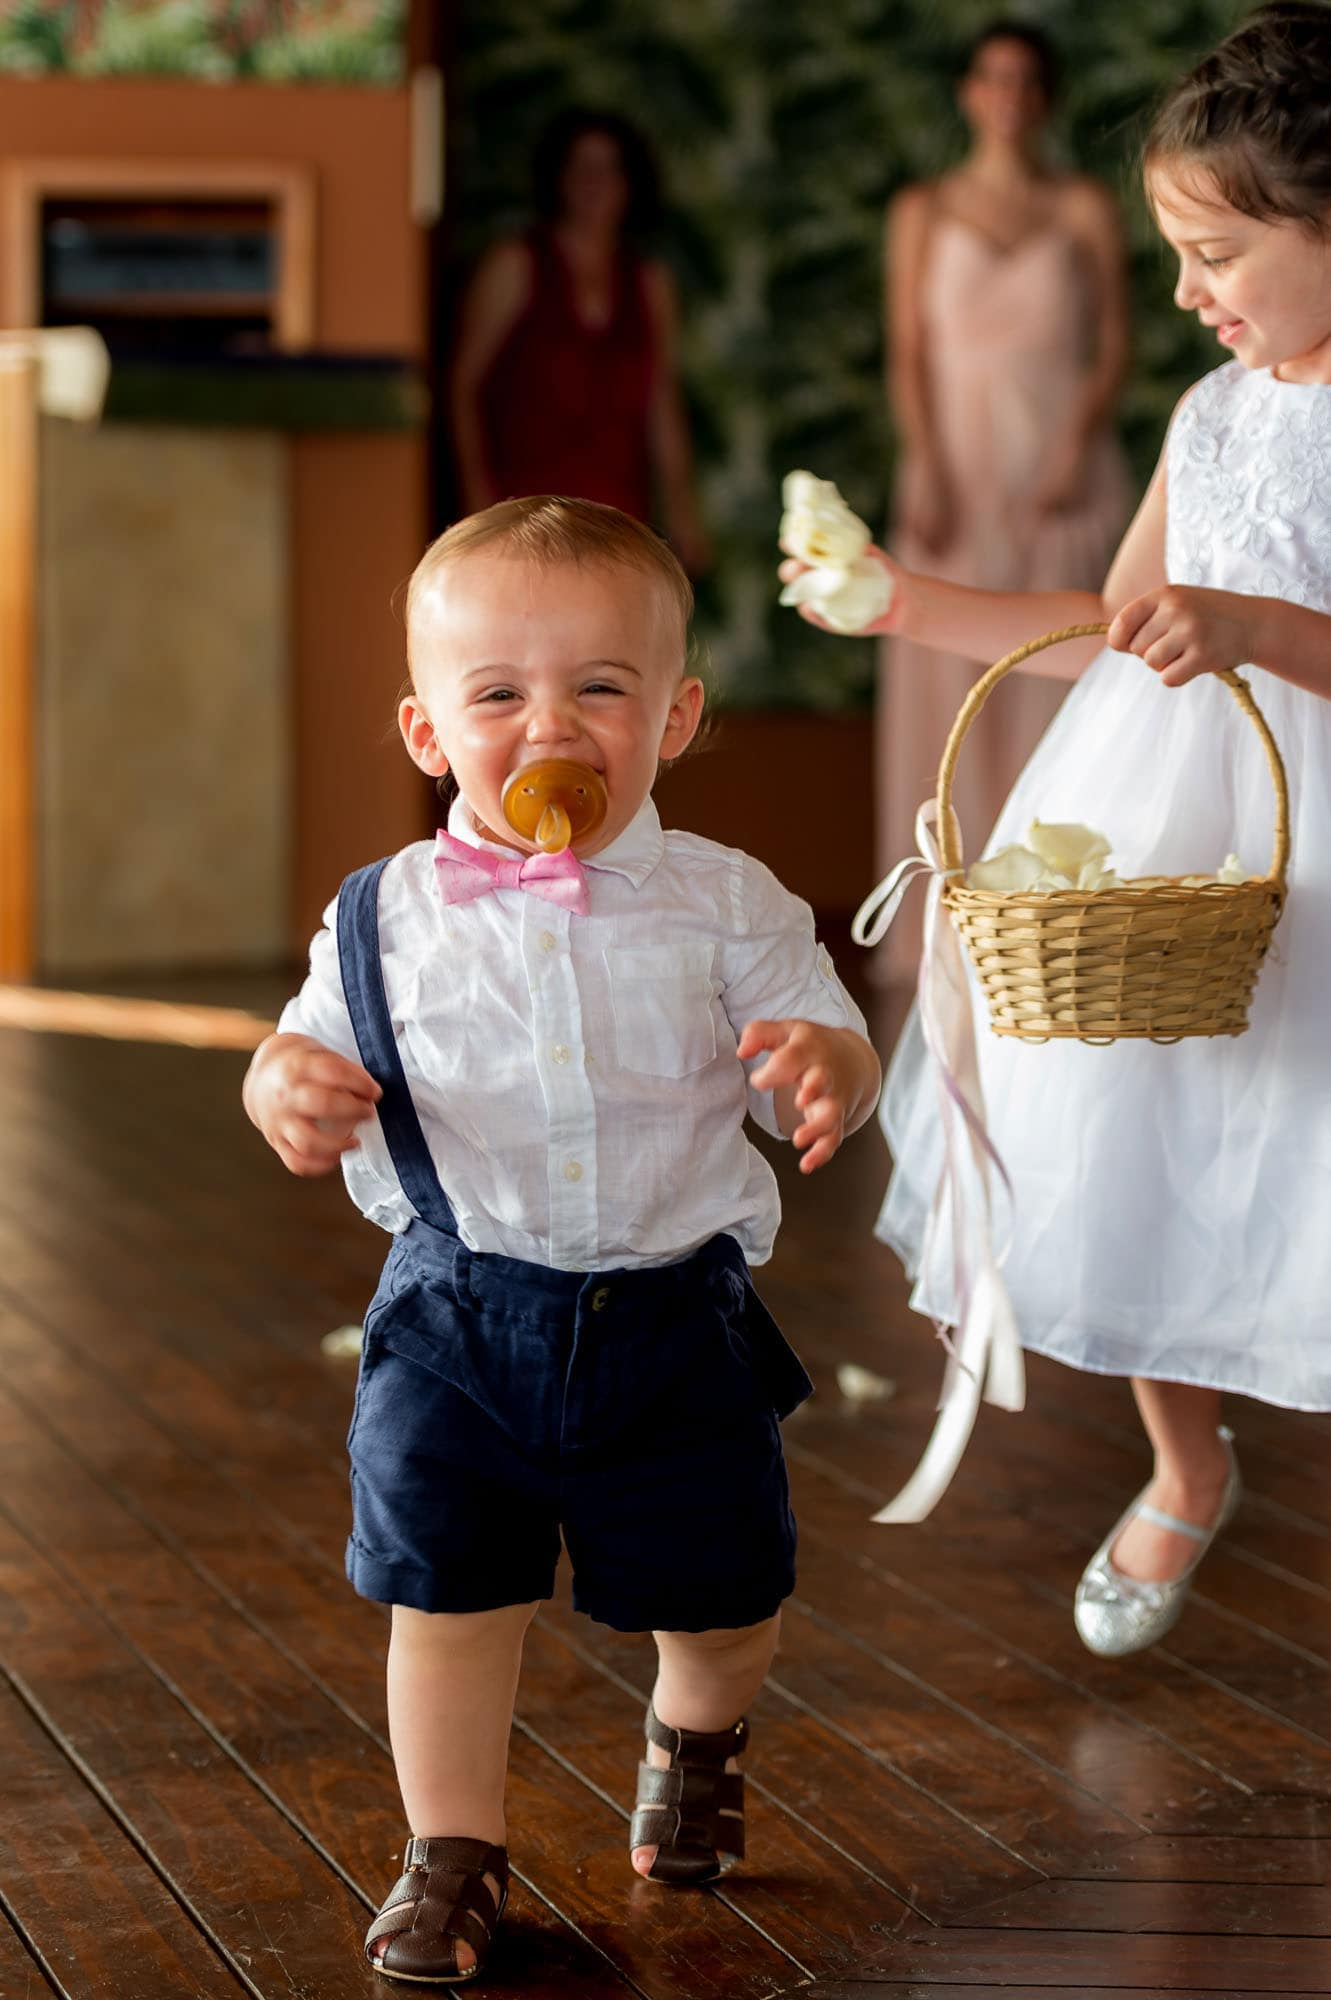 The adorable little ring bearer comes down the aisle